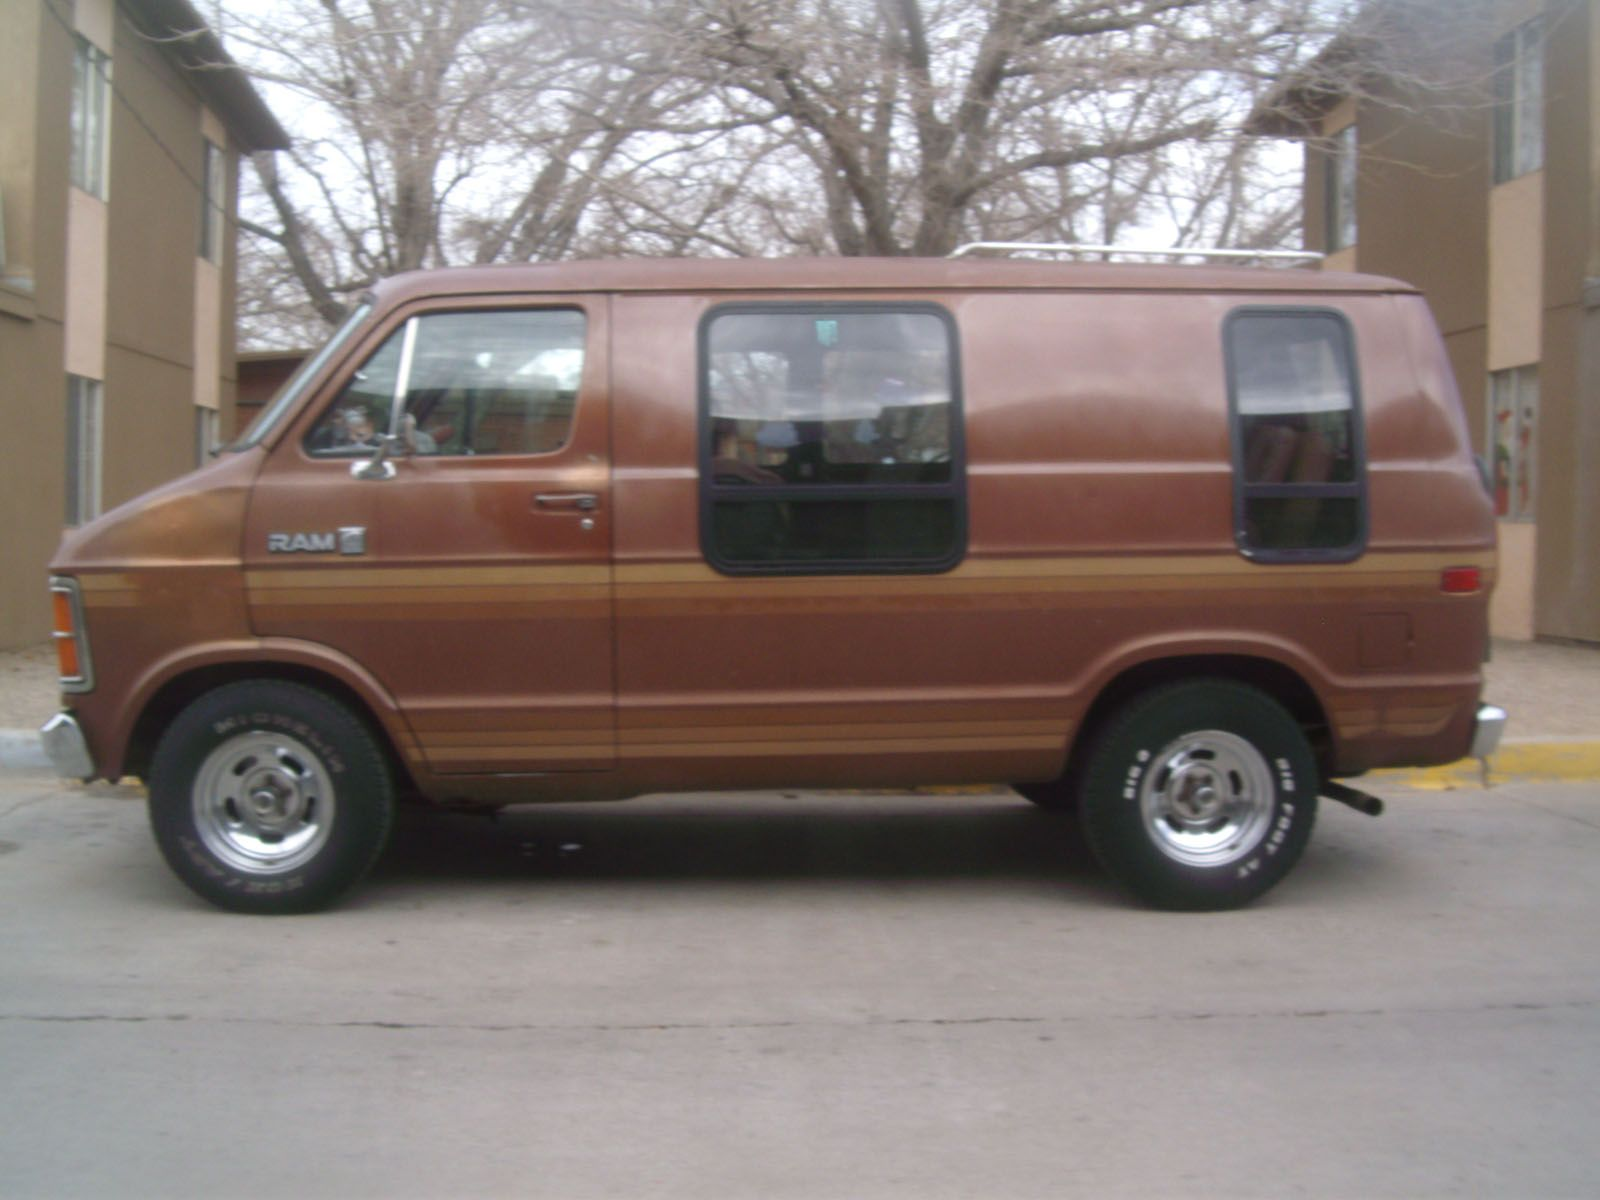 1984 Dodge Ram Van For Sale Van For Sale Dodge Ram Van Custom Vans